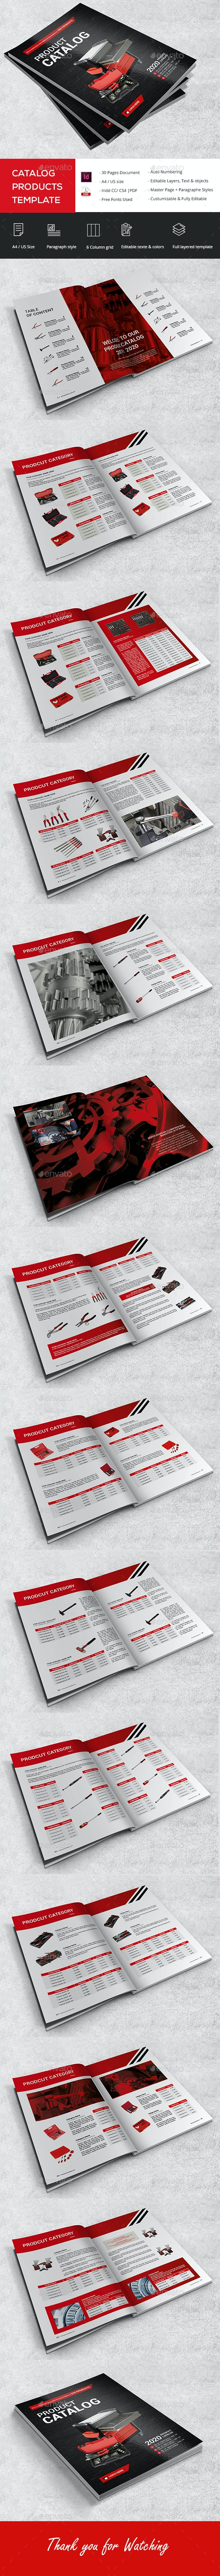 Products Catalog - Catalogs Brochures